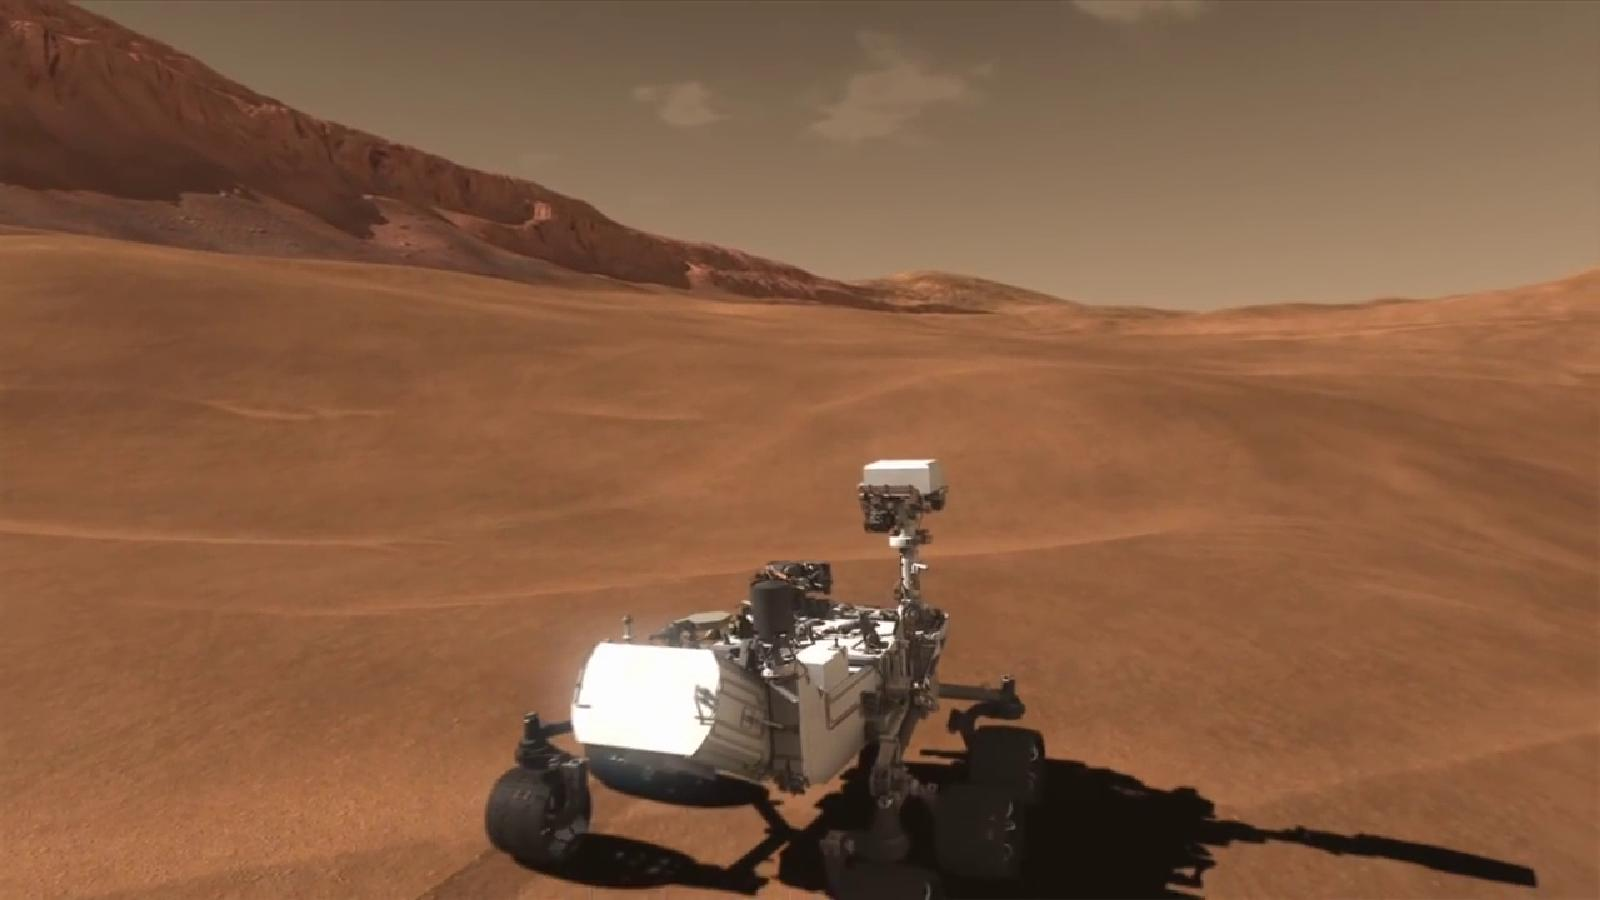 mars rover expeditions - photo #36